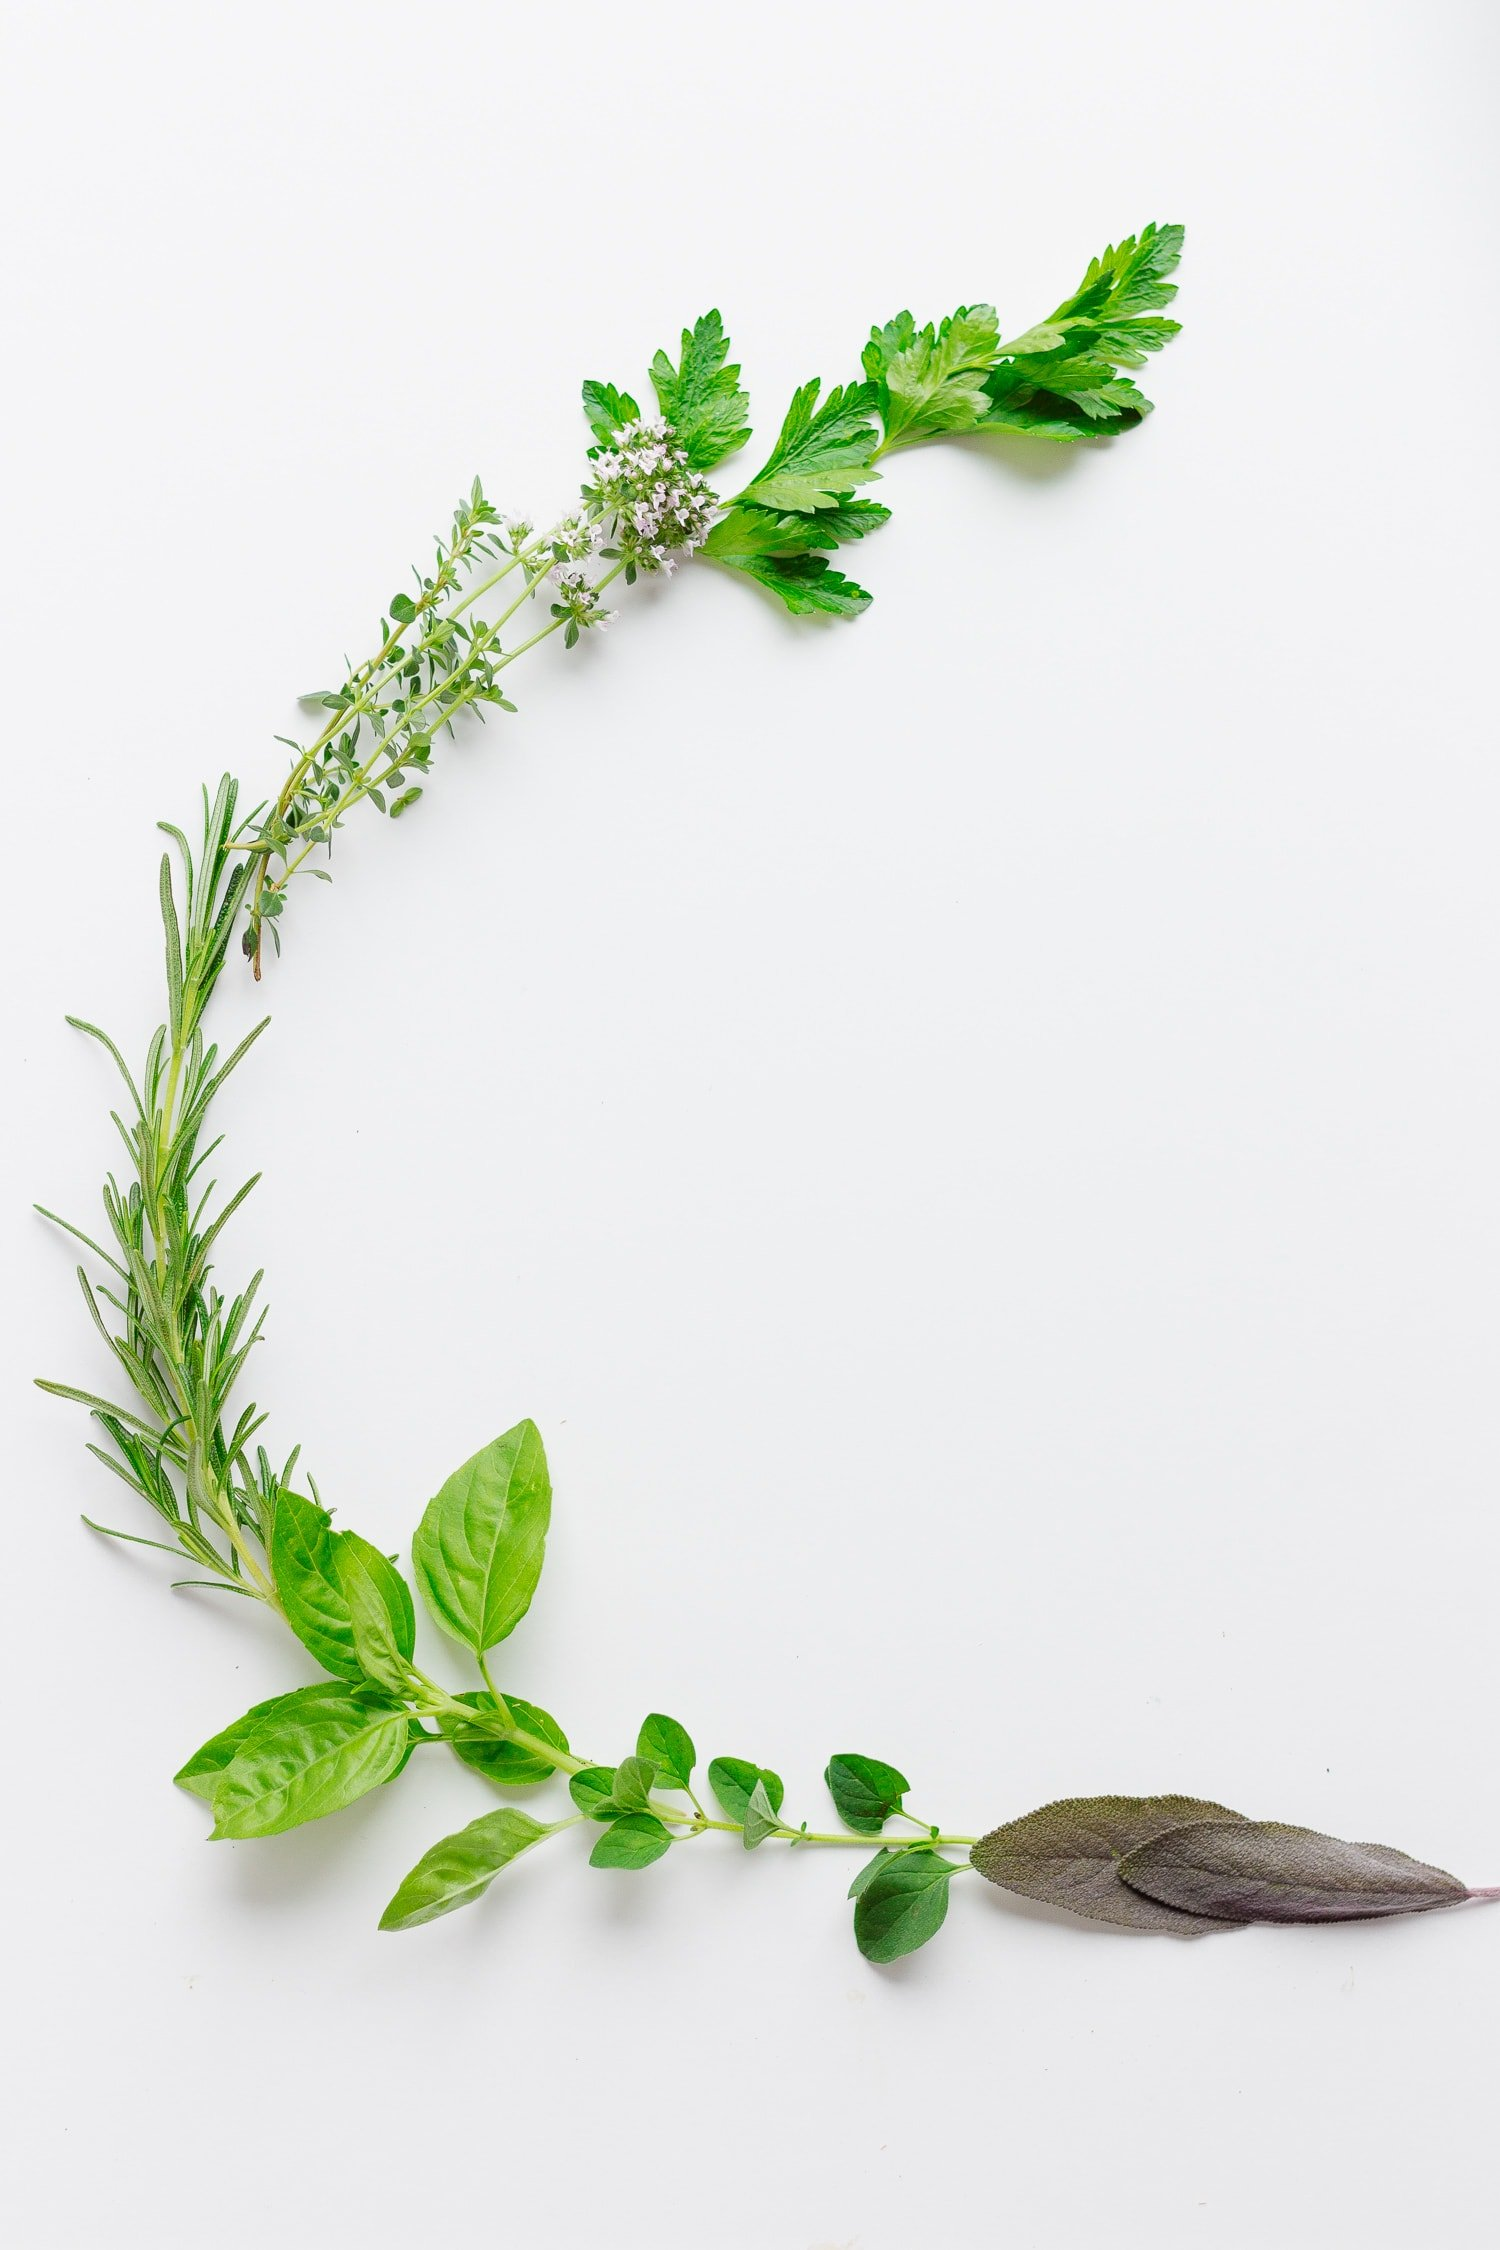 Fresh cut herbs arranged in a C shape on a white surface